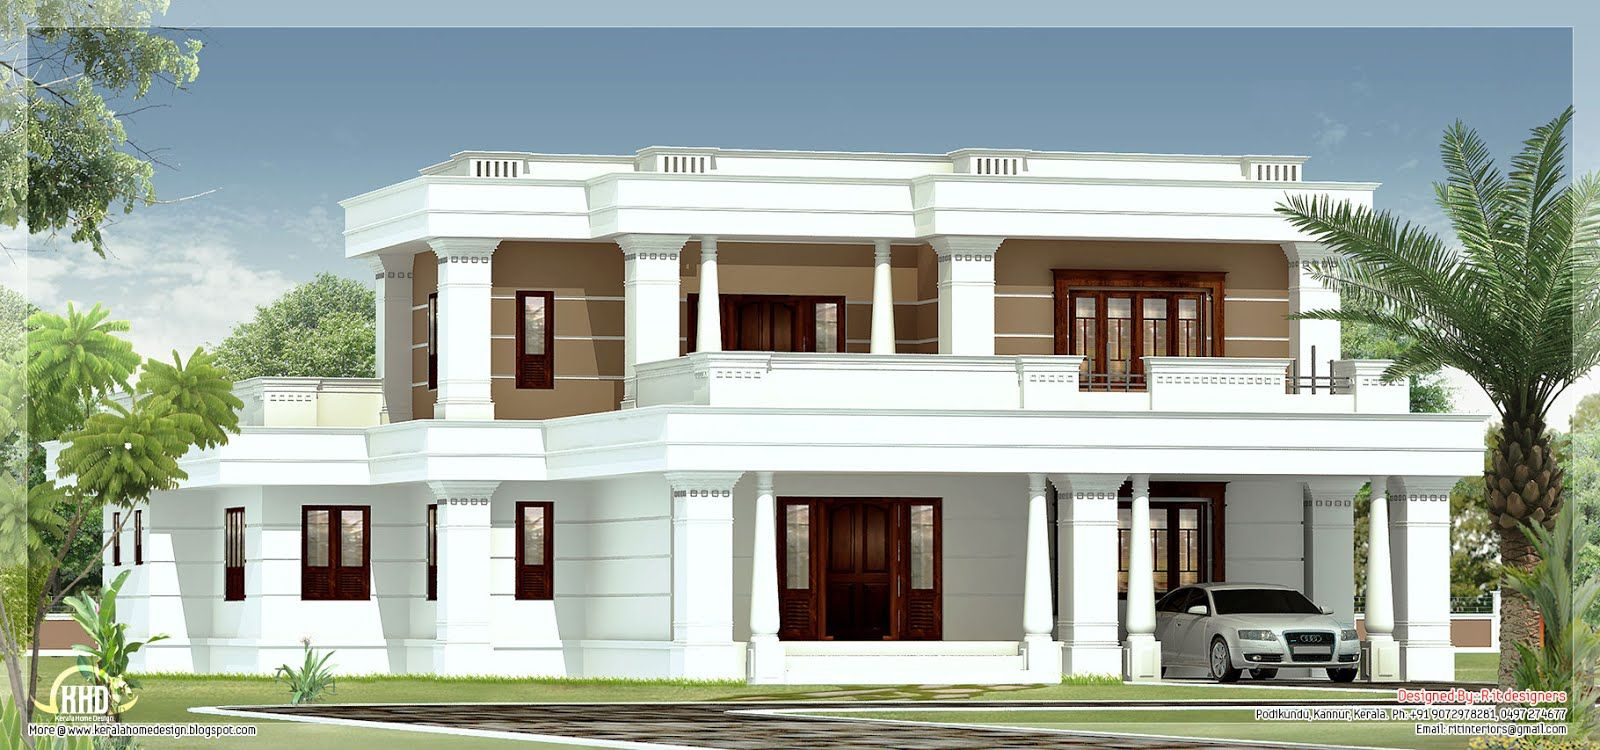 Spanish style villas google search favorite places for Flat roof elevation